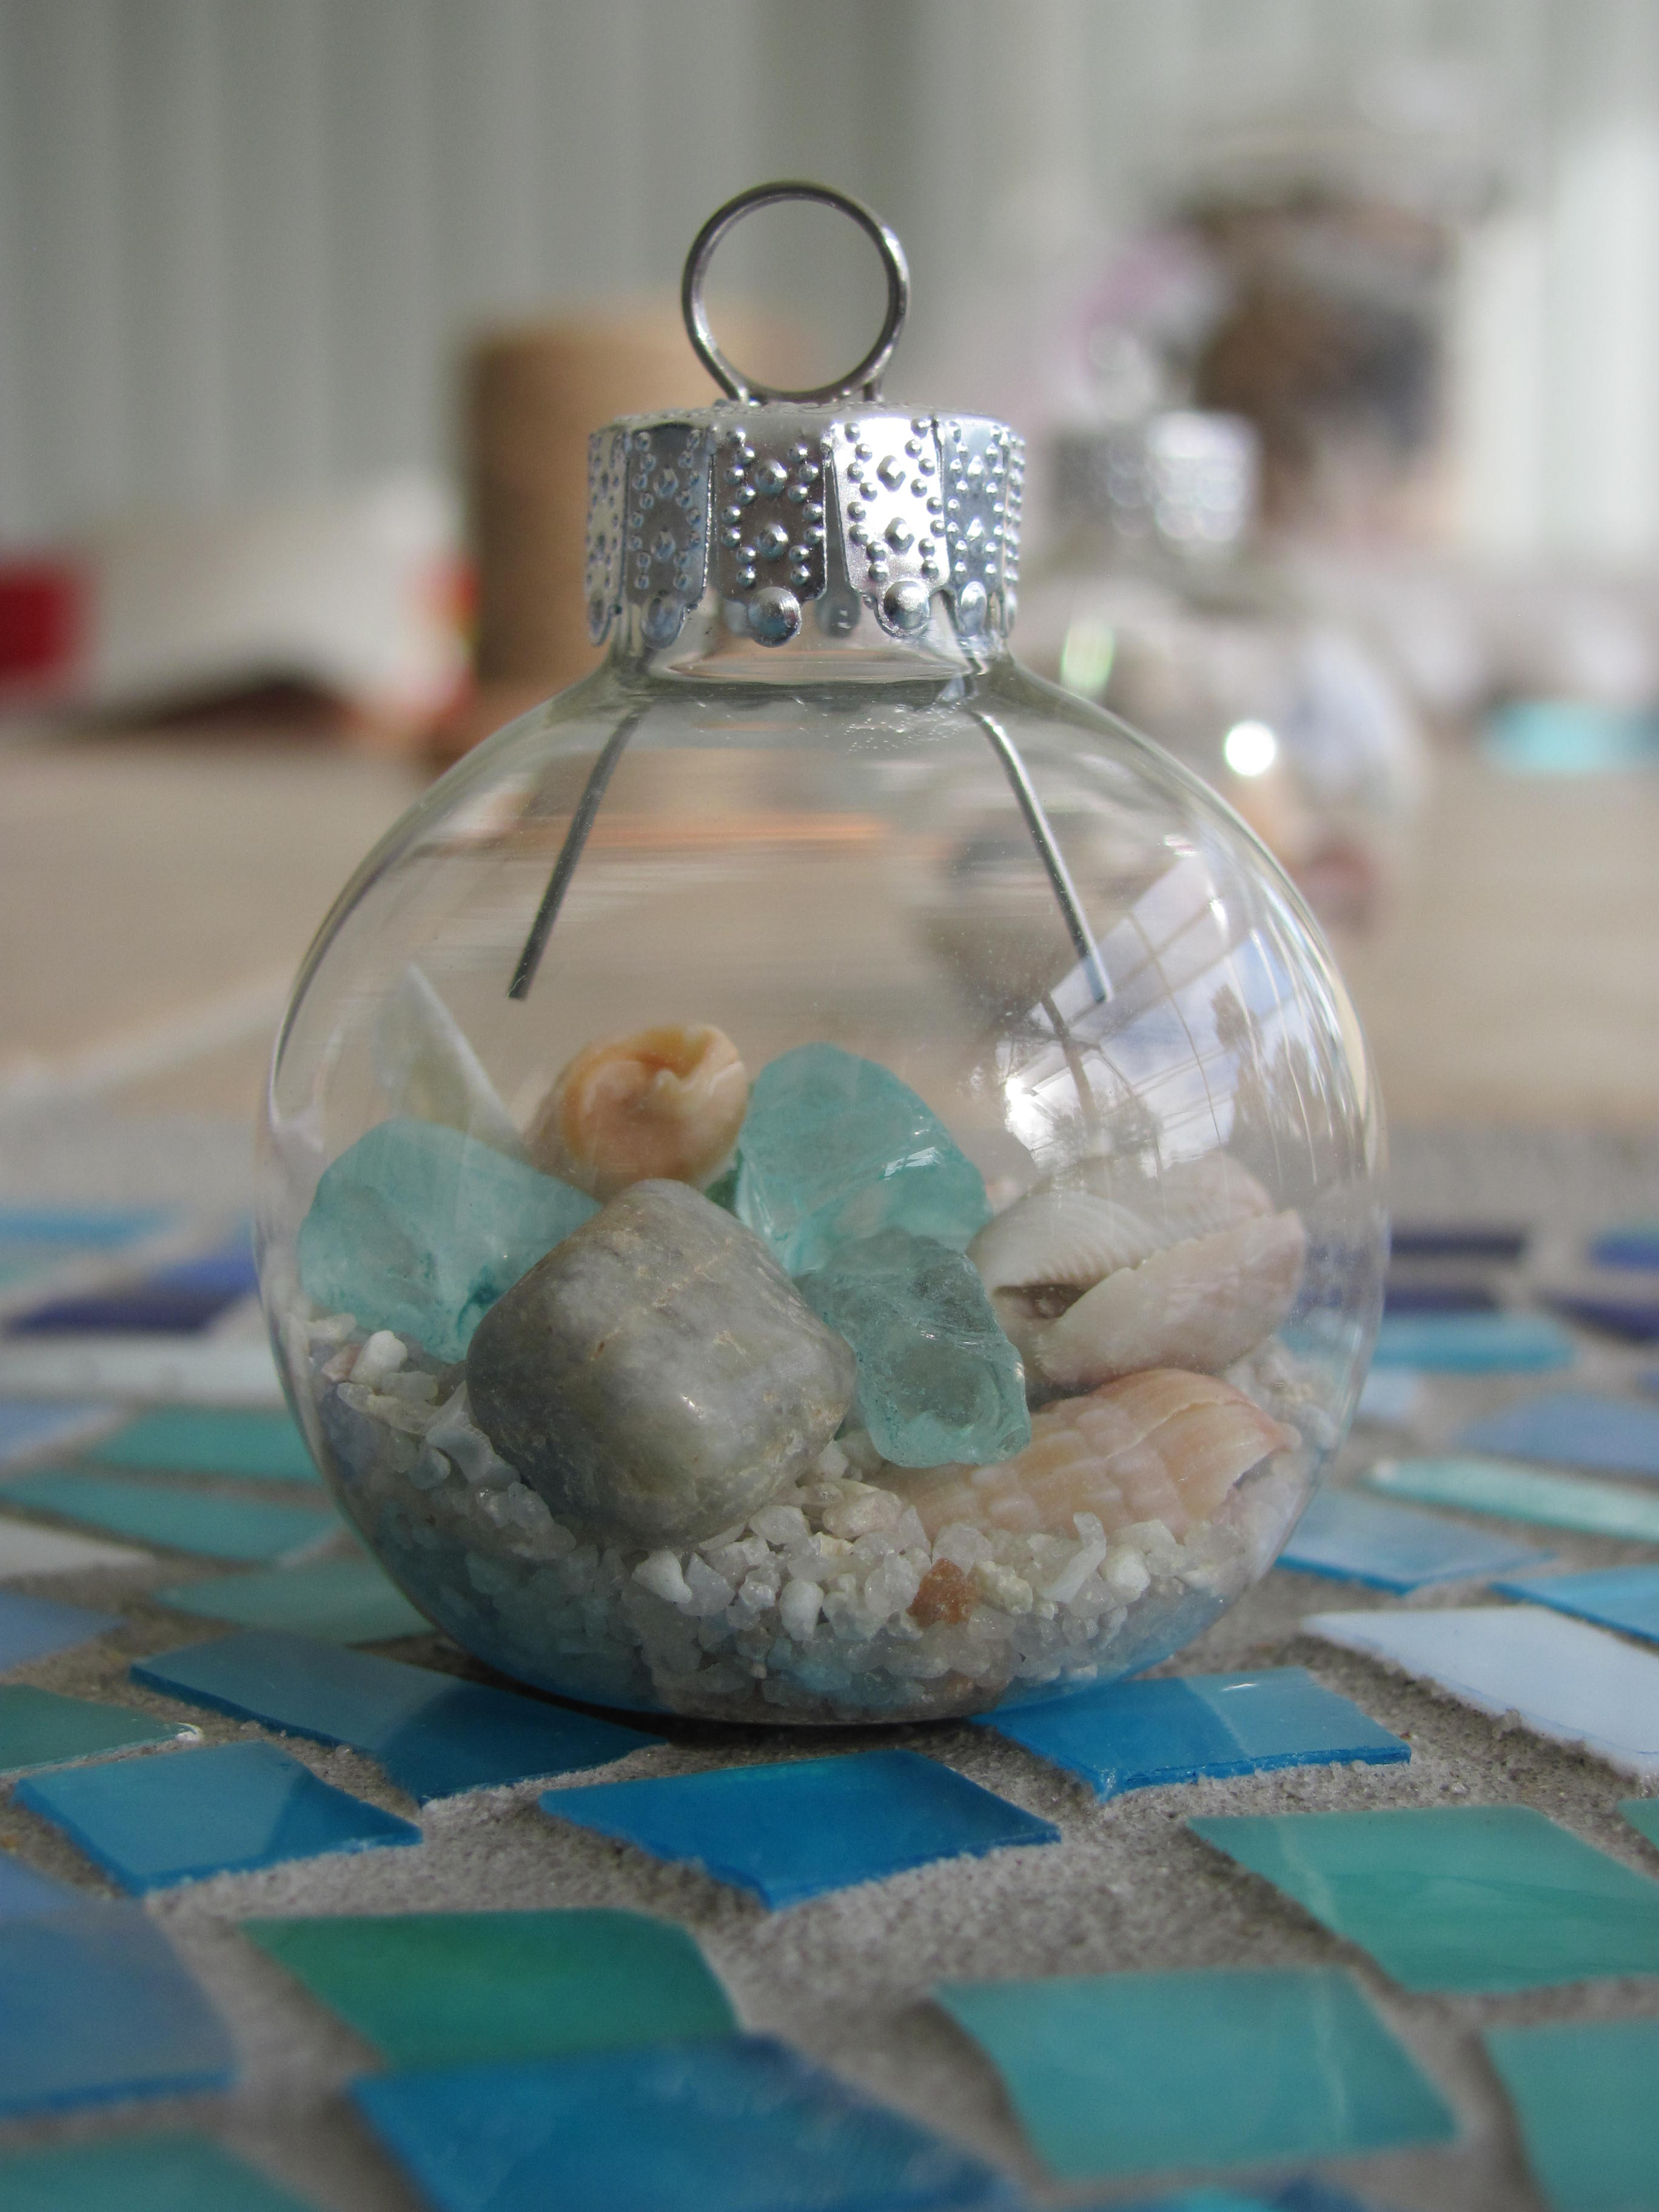 301 moved permanently for Seashell ornaments diy